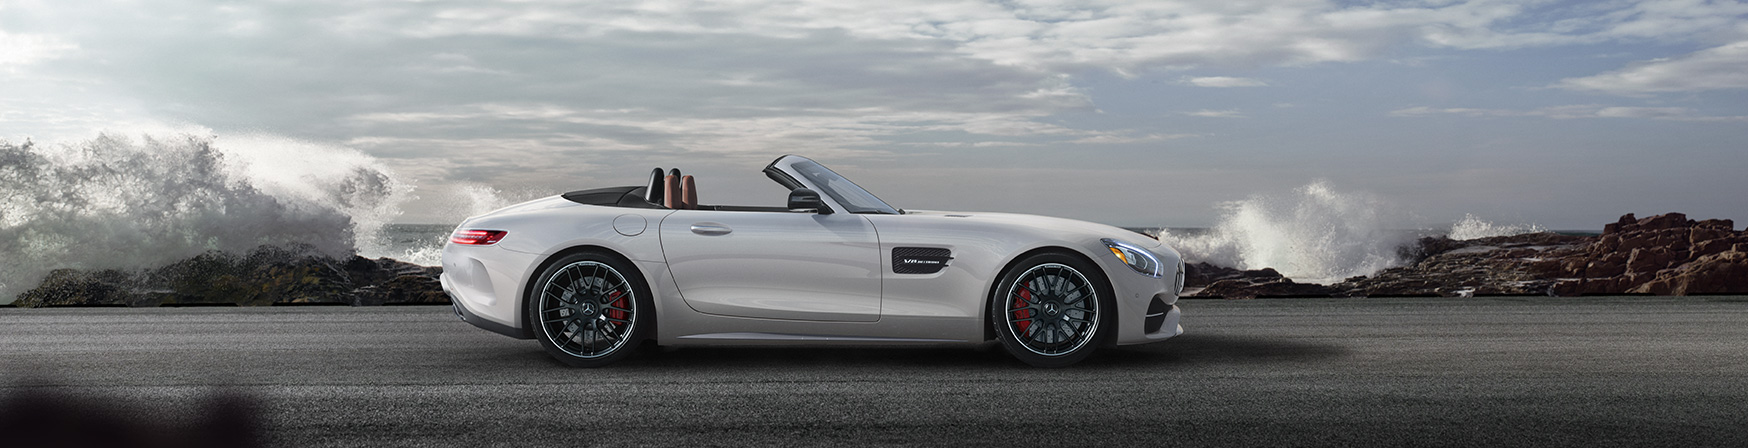 Mercedes-AMG GT C Roadster – old